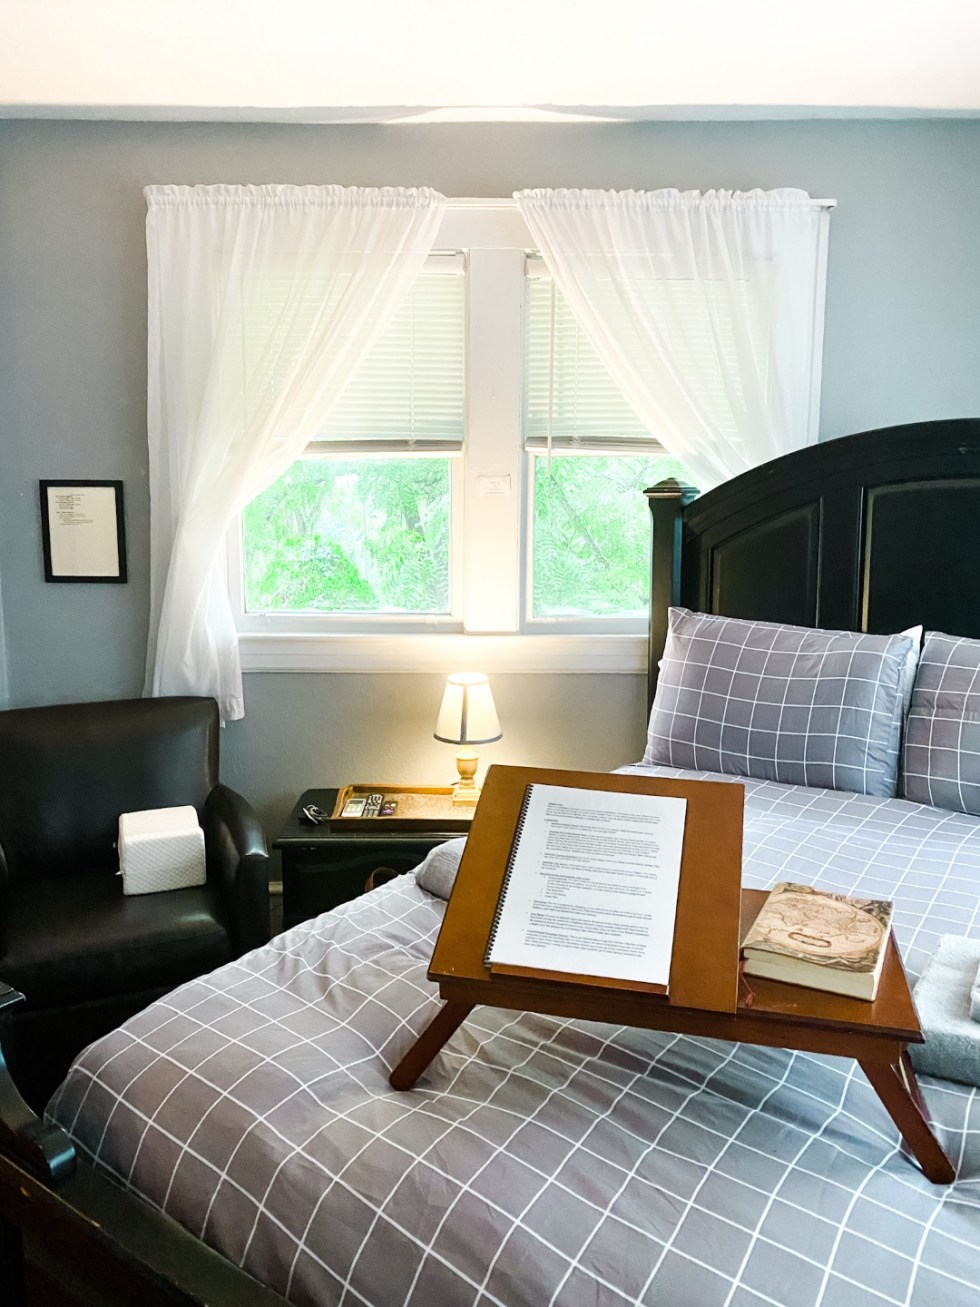 A Casual Weekend in Asheville: the Best Things to Do with your Dogs - I'm Fixin' To - @mbg0112   Weekend In Asheville by popular NC travel blog, I'm Fixin' To: image of a bed with a breakfast in bed tray on it.